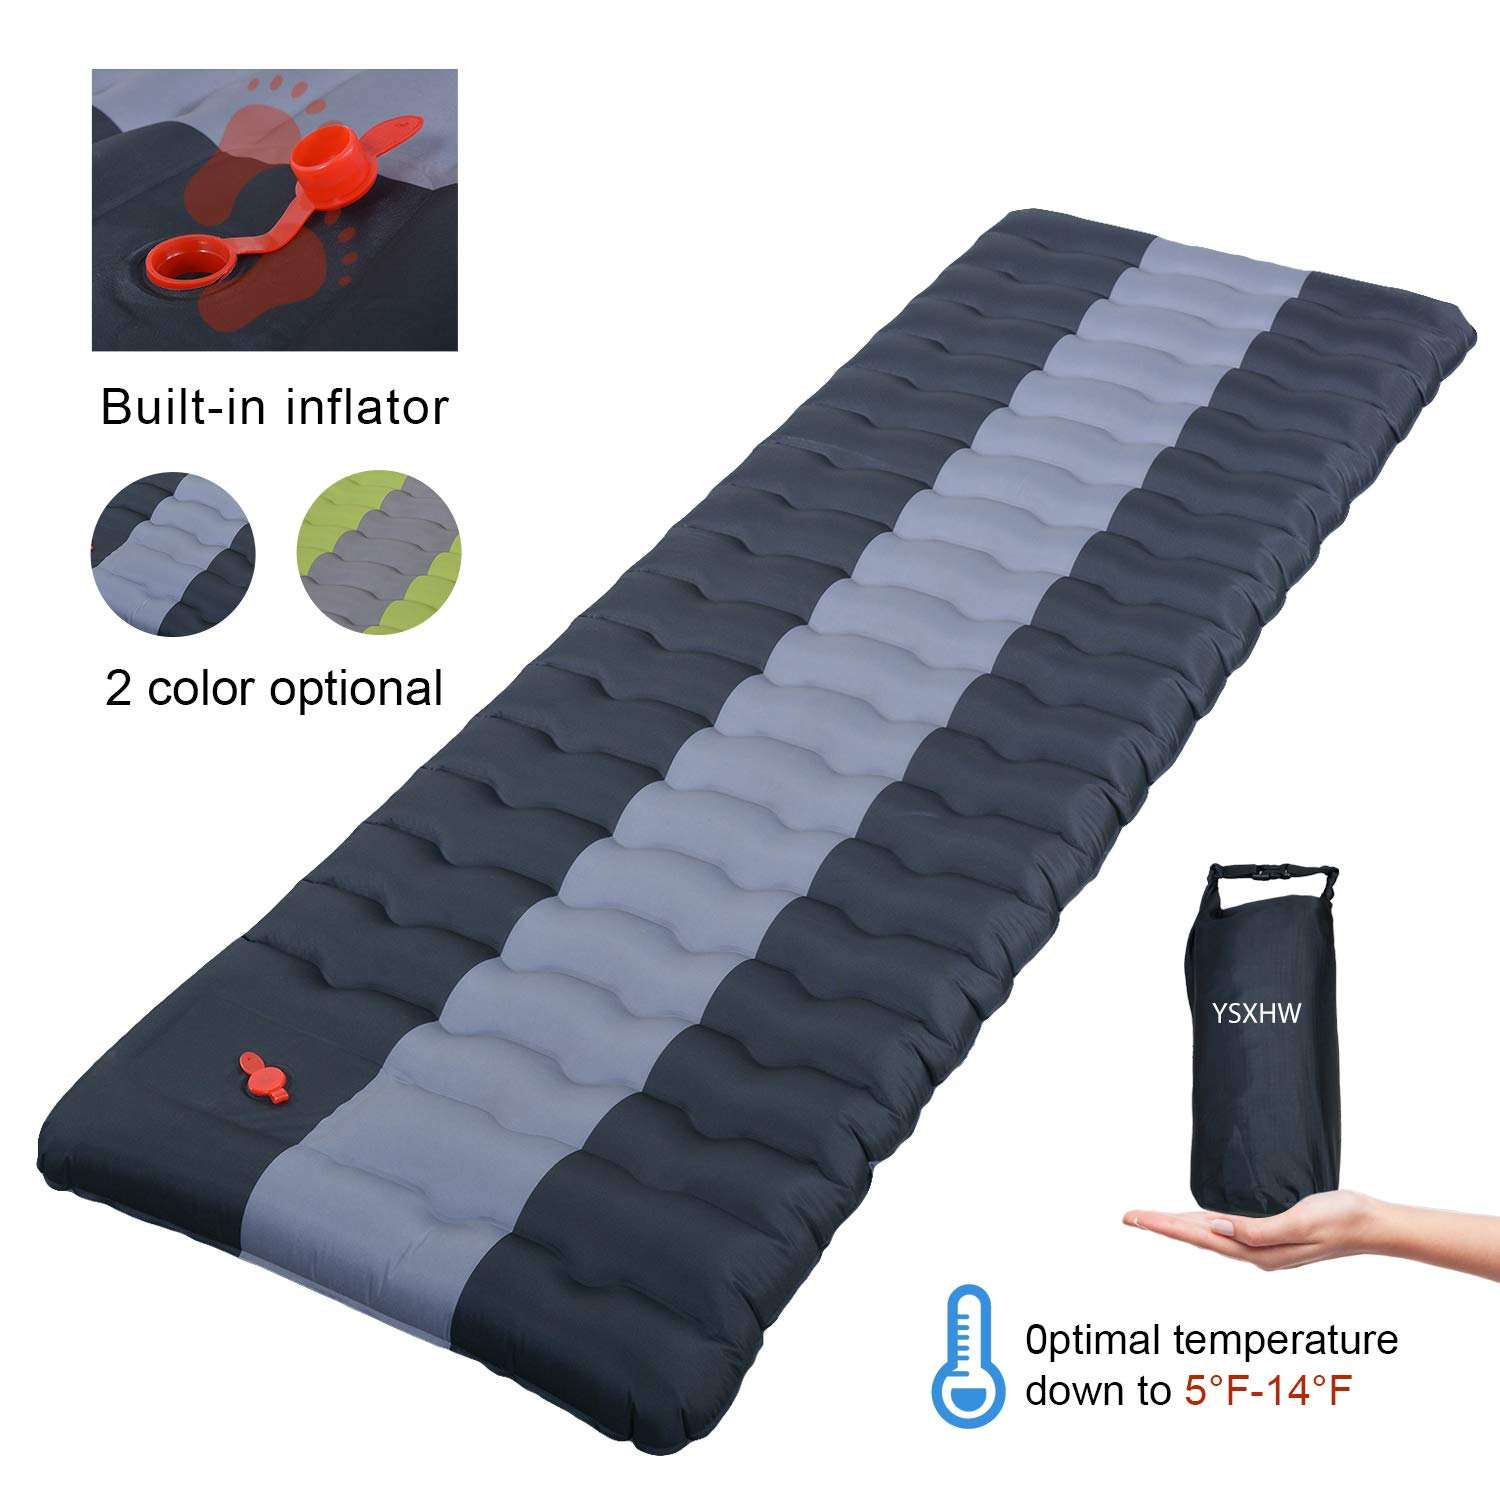 YSXHW Self Inflating Camping Pads Thick 4.7 Inch Lightweight Camping Sleeping Pad Ultralight,Compact, Waterproof PVC Inflatable Mat for Tent, Hiking and Backpacking -Black Built in Pump by YSXHW